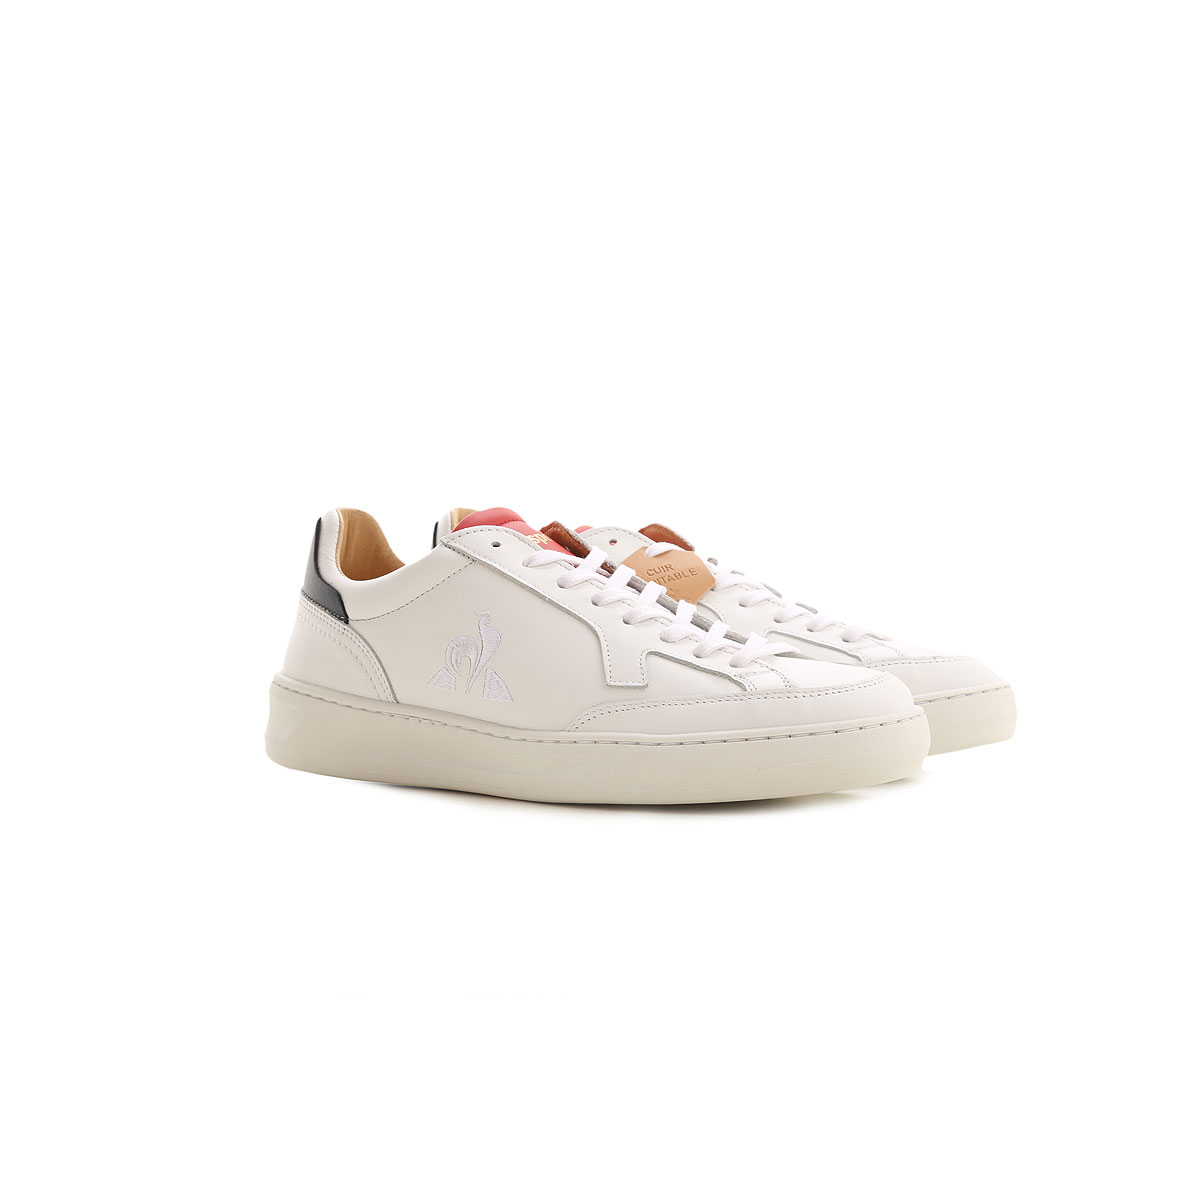 Le Coq Sportif Sneakers for Men On Sale, White, Leather, 2019, 10 10.5 11.5 7.5 8 9